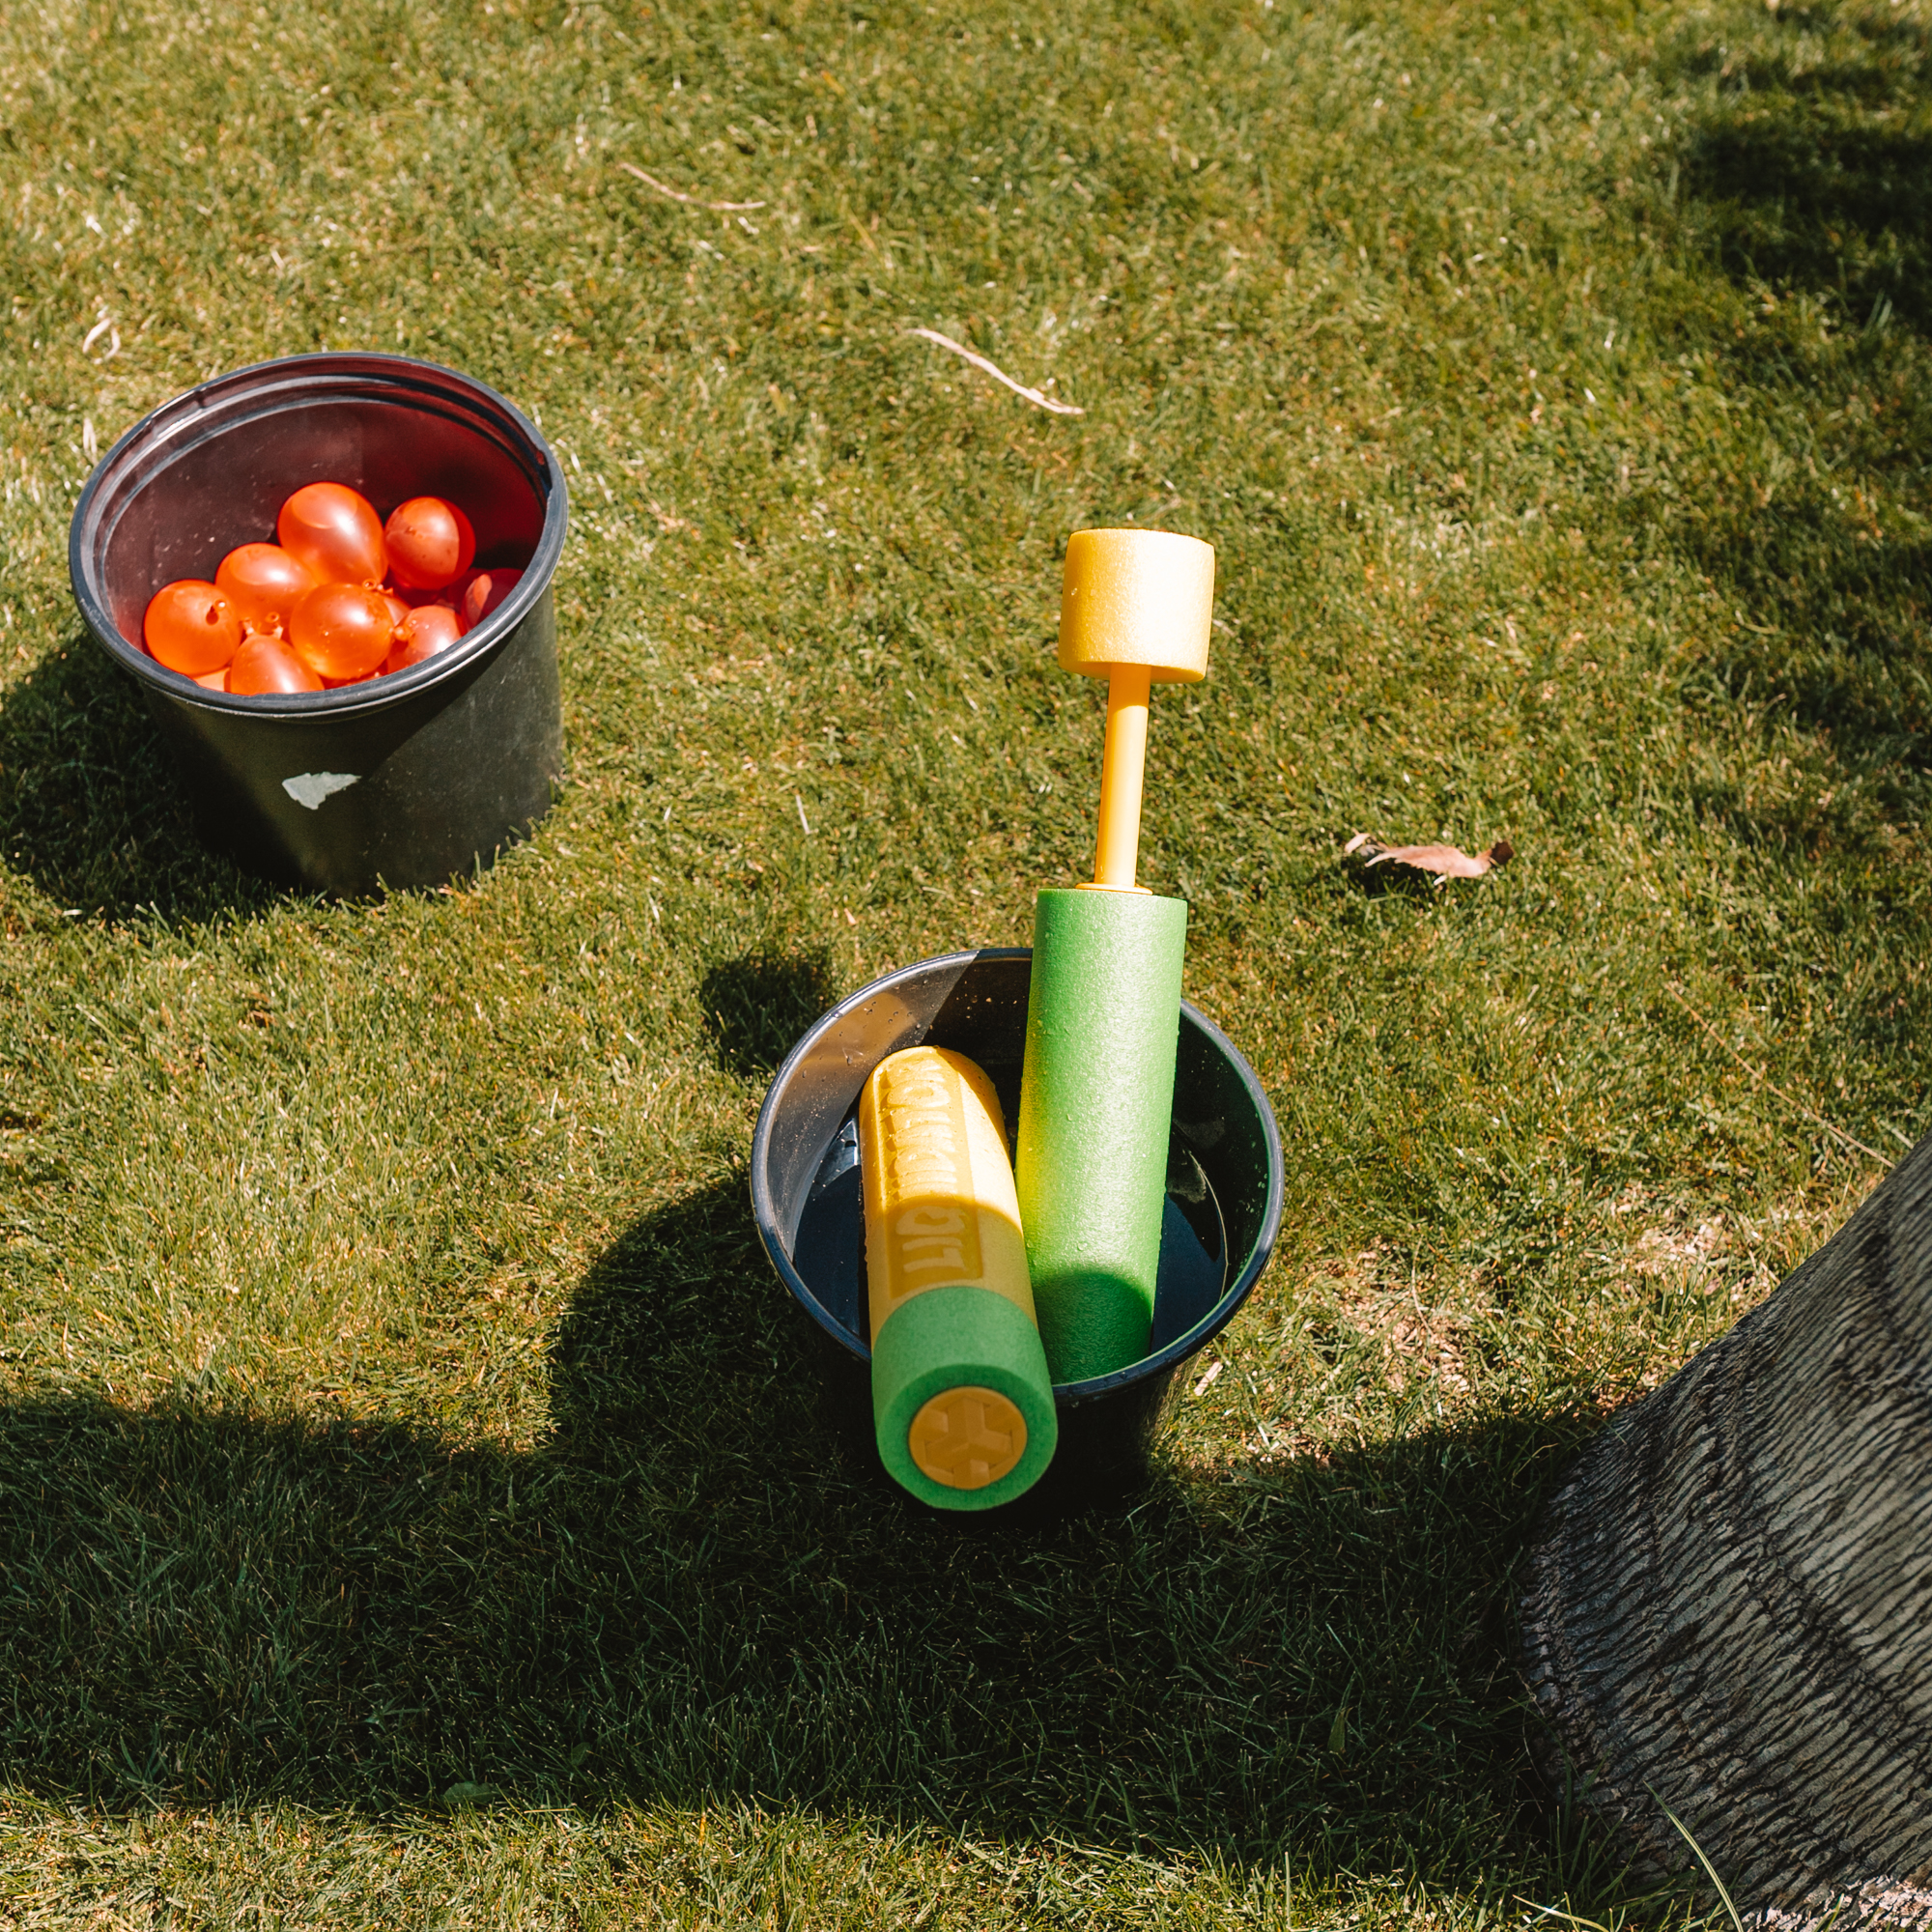 fill the bucket with these water squirters. #outdoorgames #backyardfun #watergames